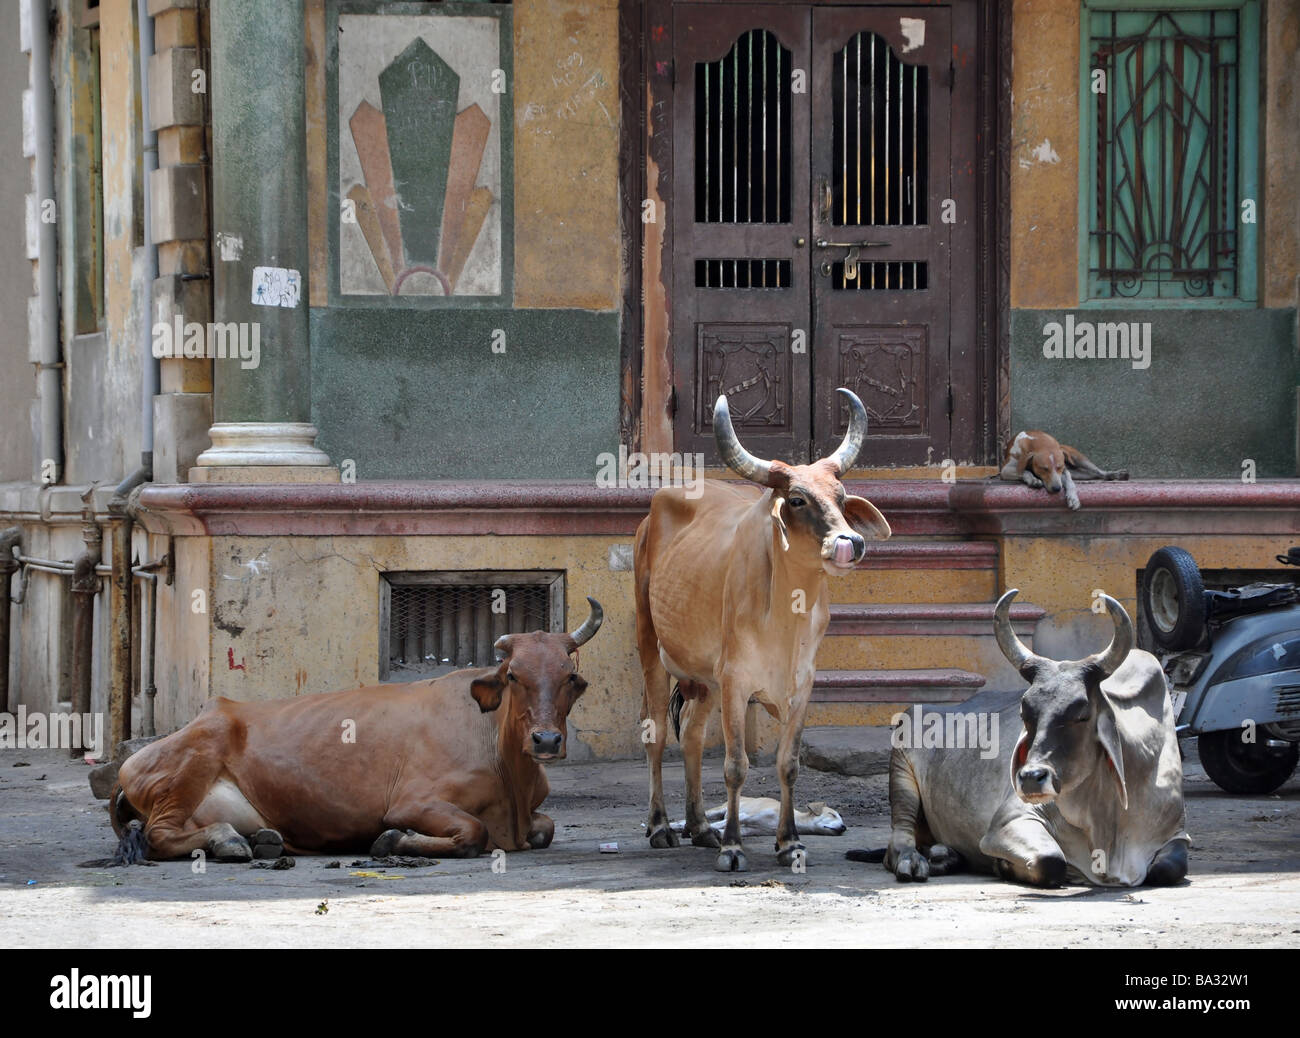 Friendship in an Ahmedabad street - Stock Image